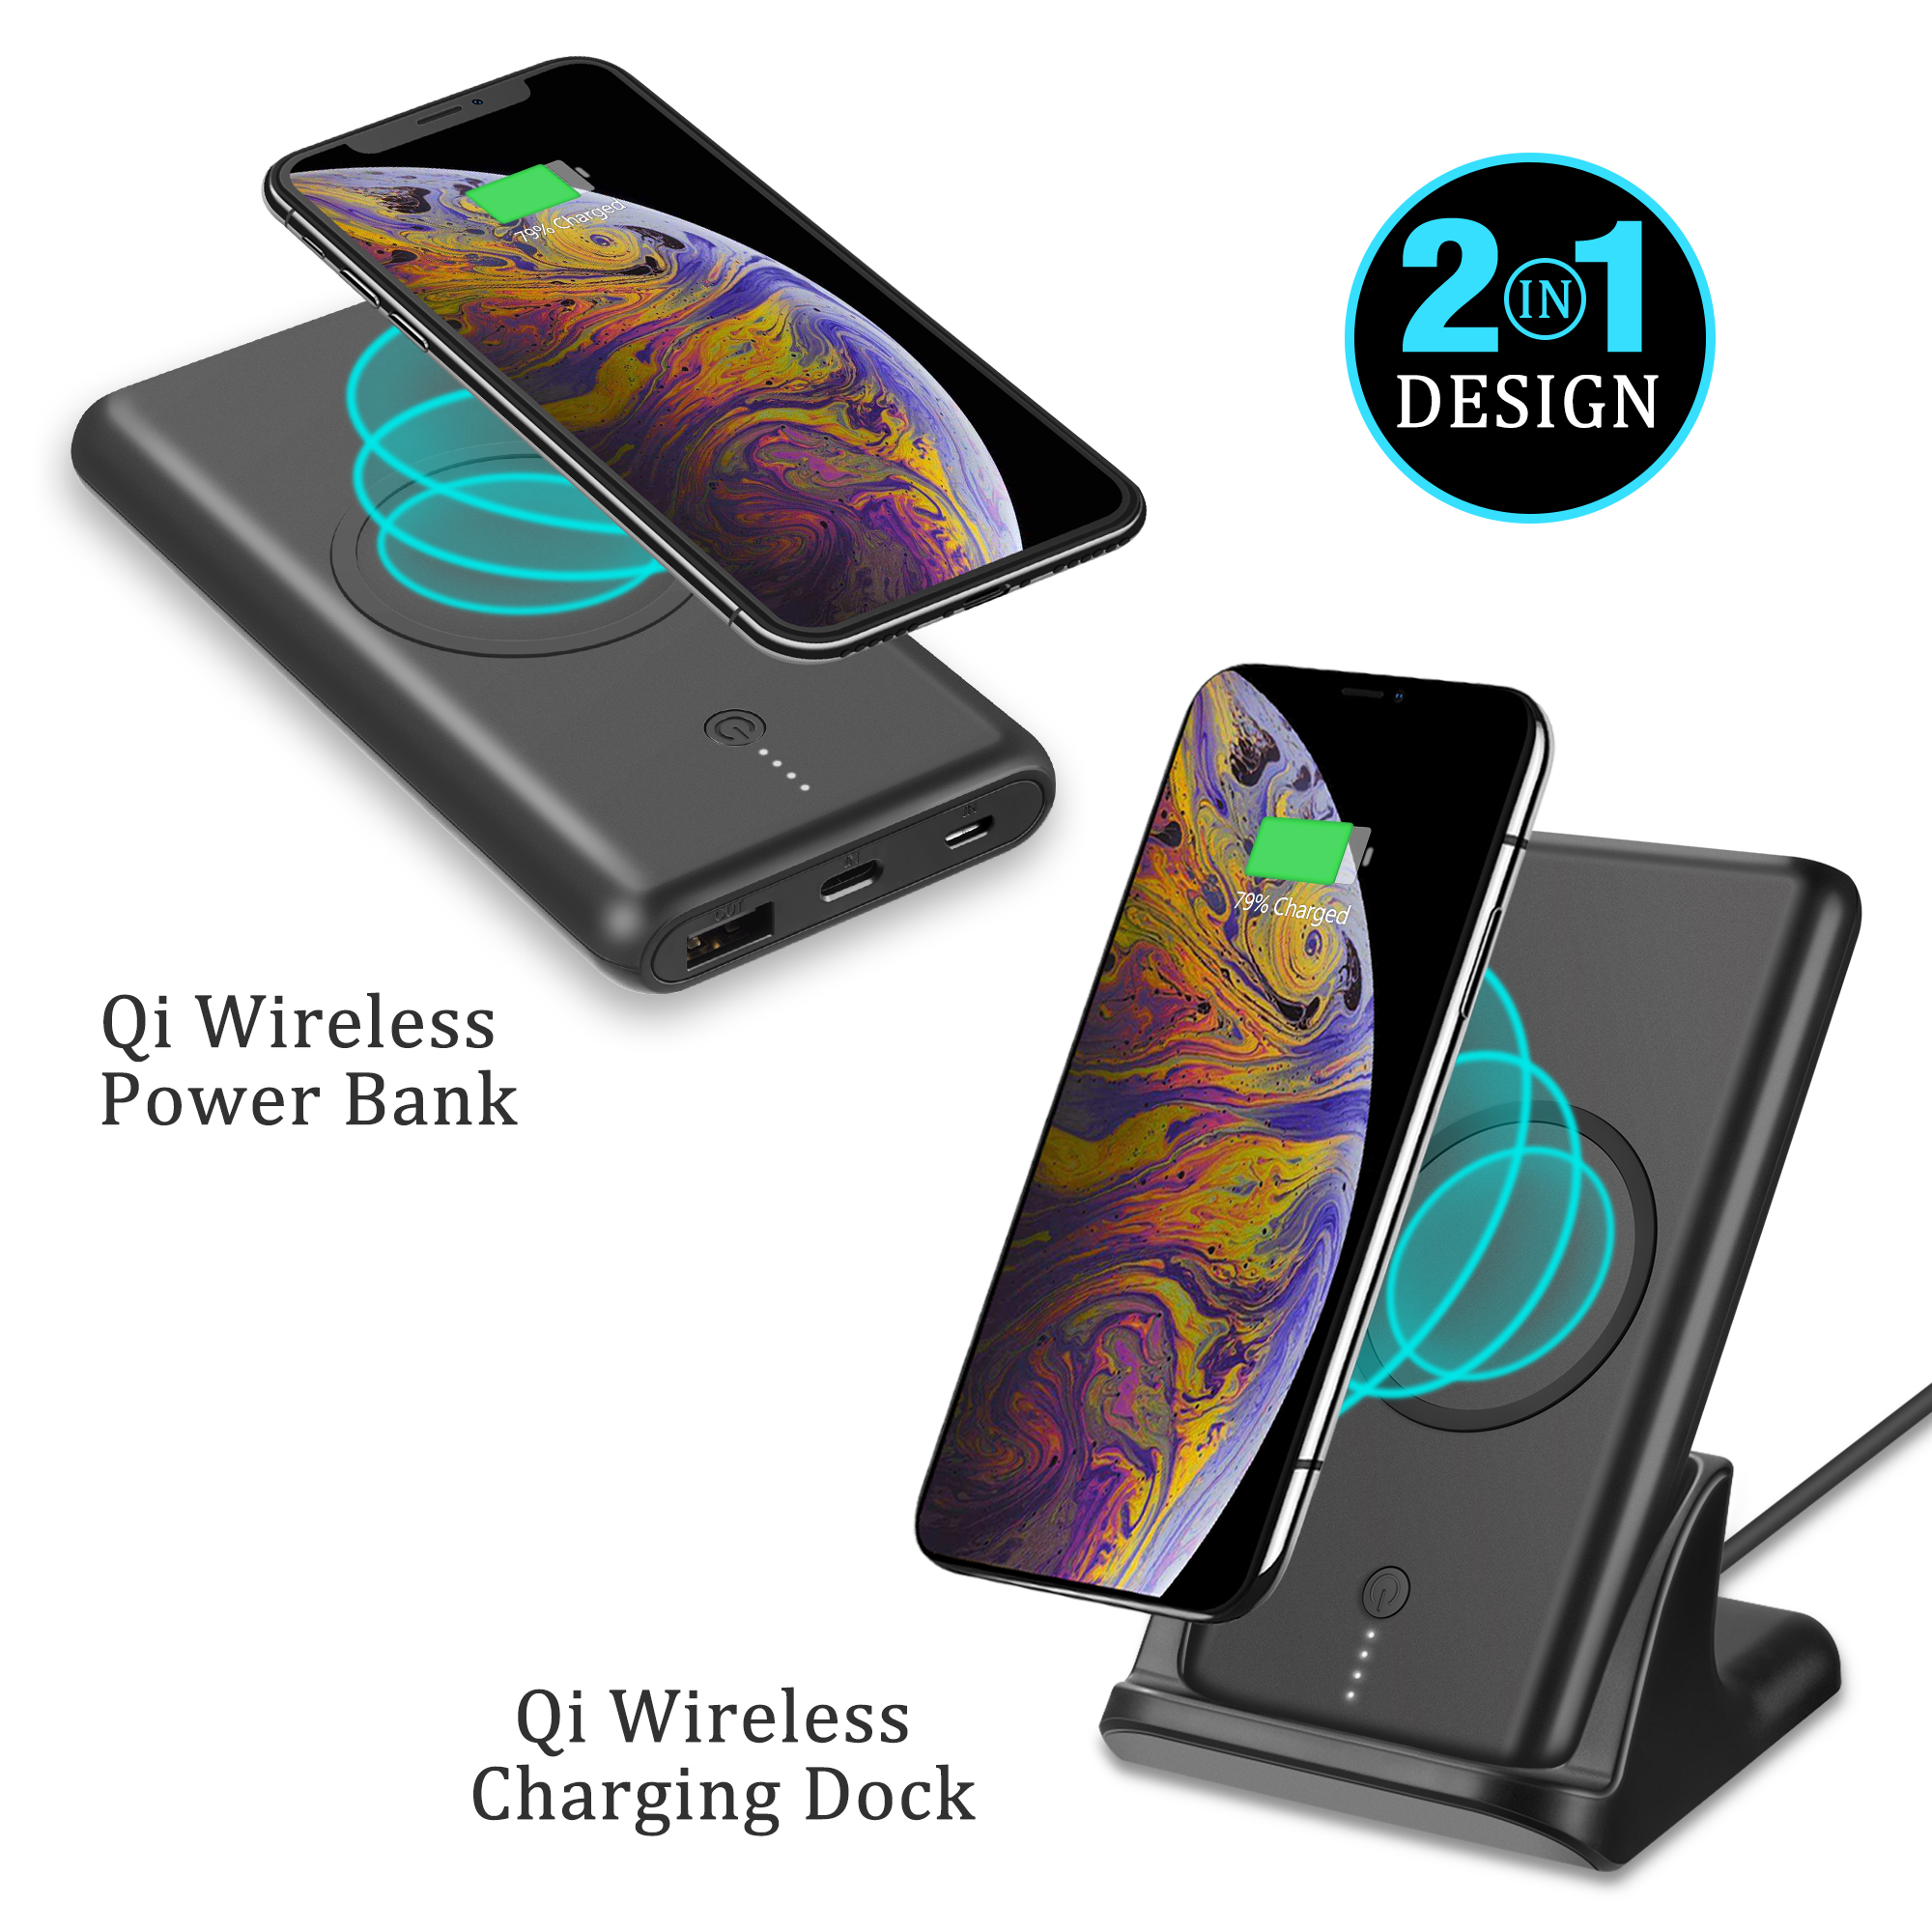 QI Wireless Charging Station Charger Dock Stand Pad, LUXMO Wireless Power Bank External Battery Charger Pack Portable Charger Battery Pack for Samsung Galaxy S9/S8/Note 9 8,iPhone XS/XR/X/8/8 Plus